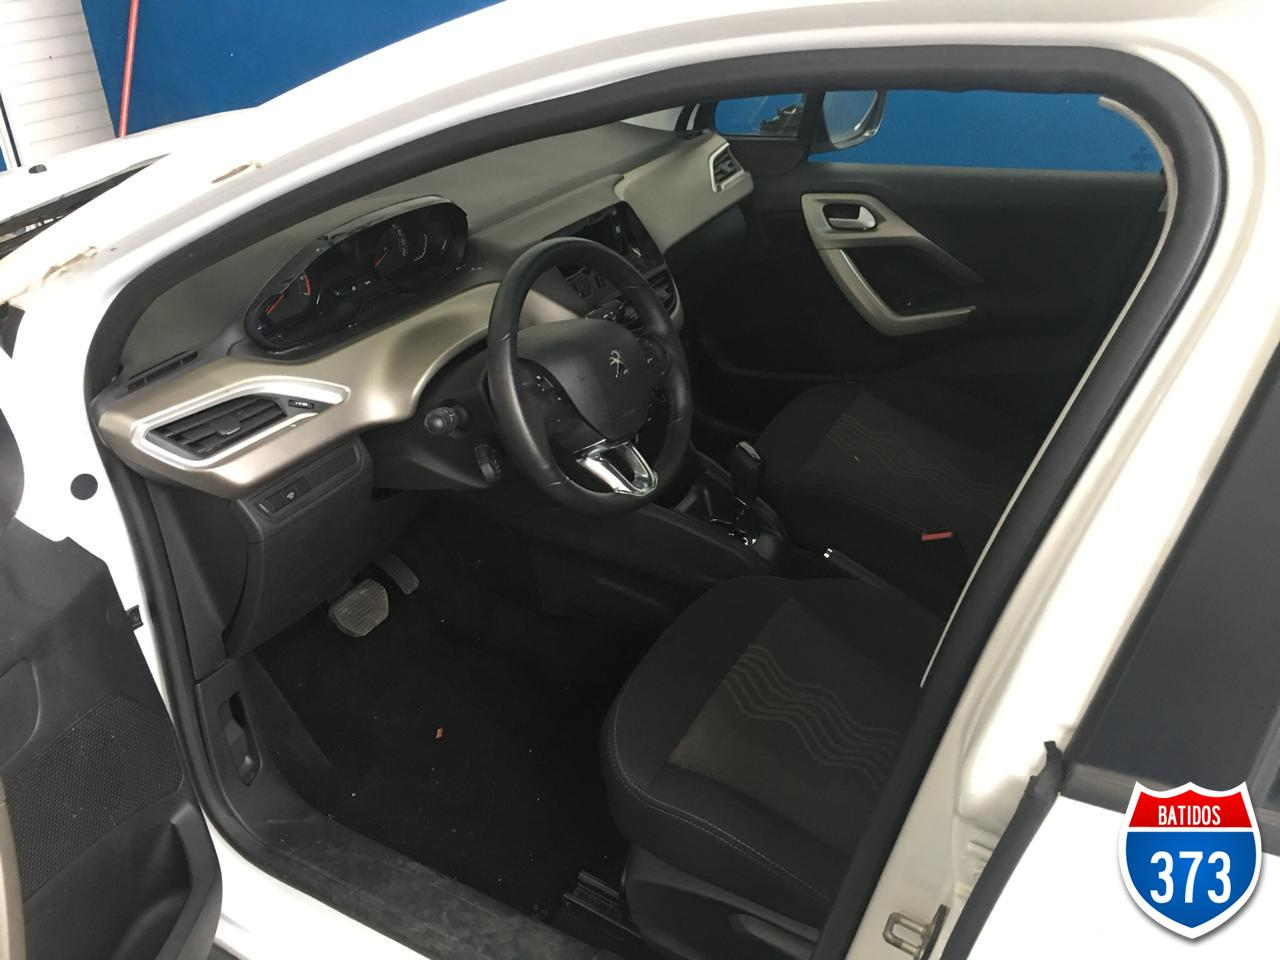 Peugeot 2008 Allure 1.6 At  2018 Batido, Foto 16334